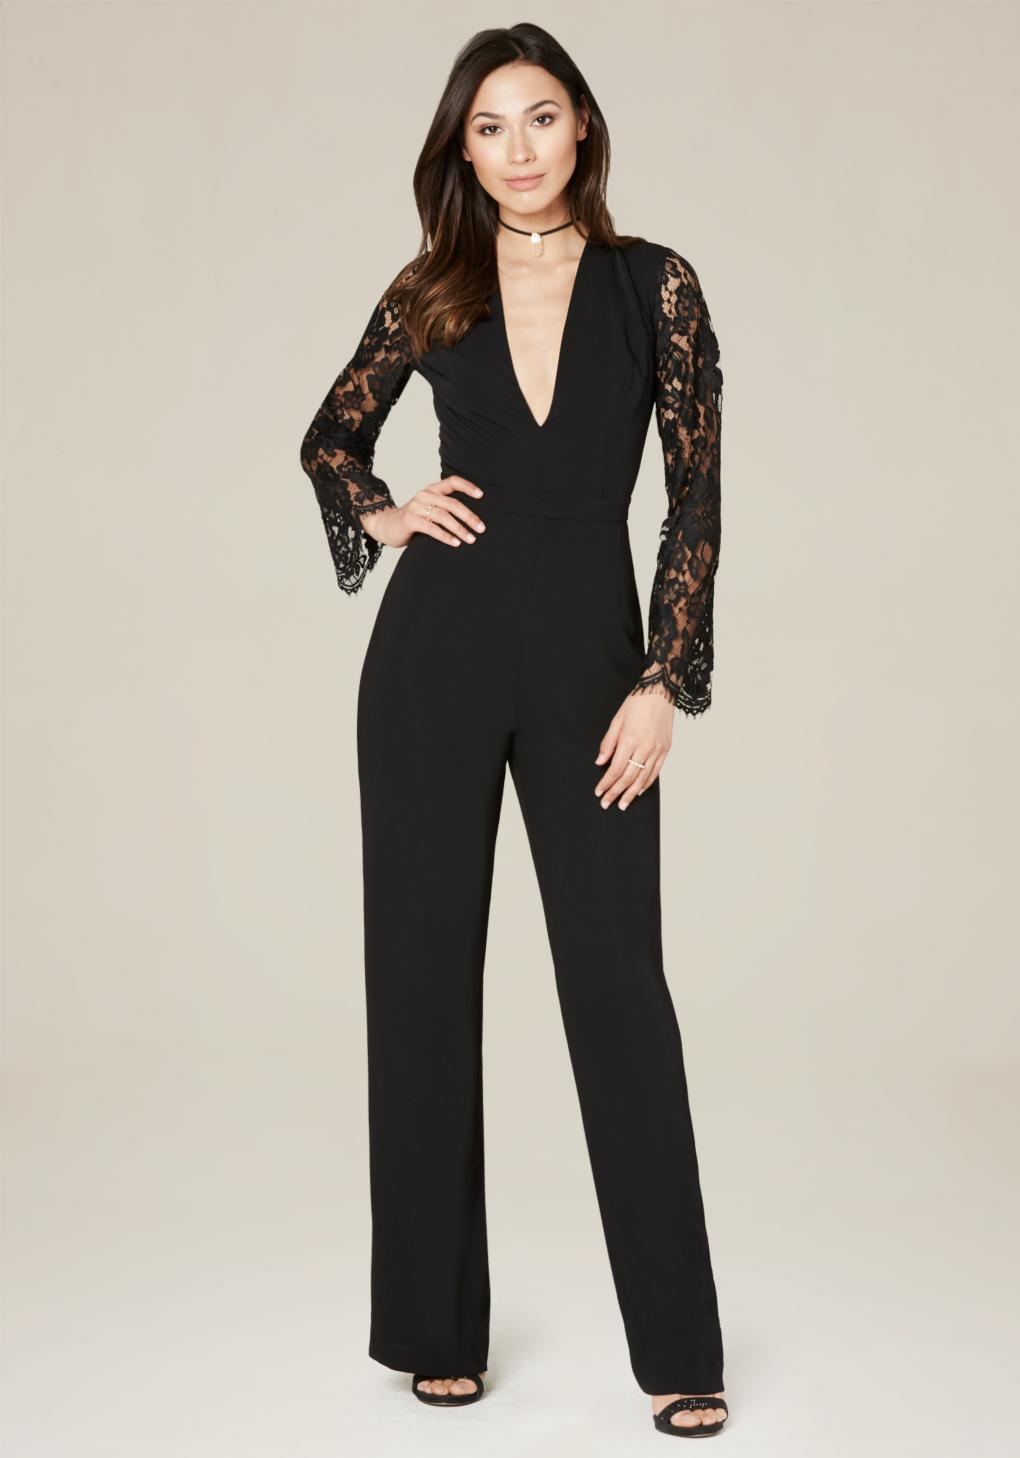 Bebe Lace Sleeve Jumpsuit in Black